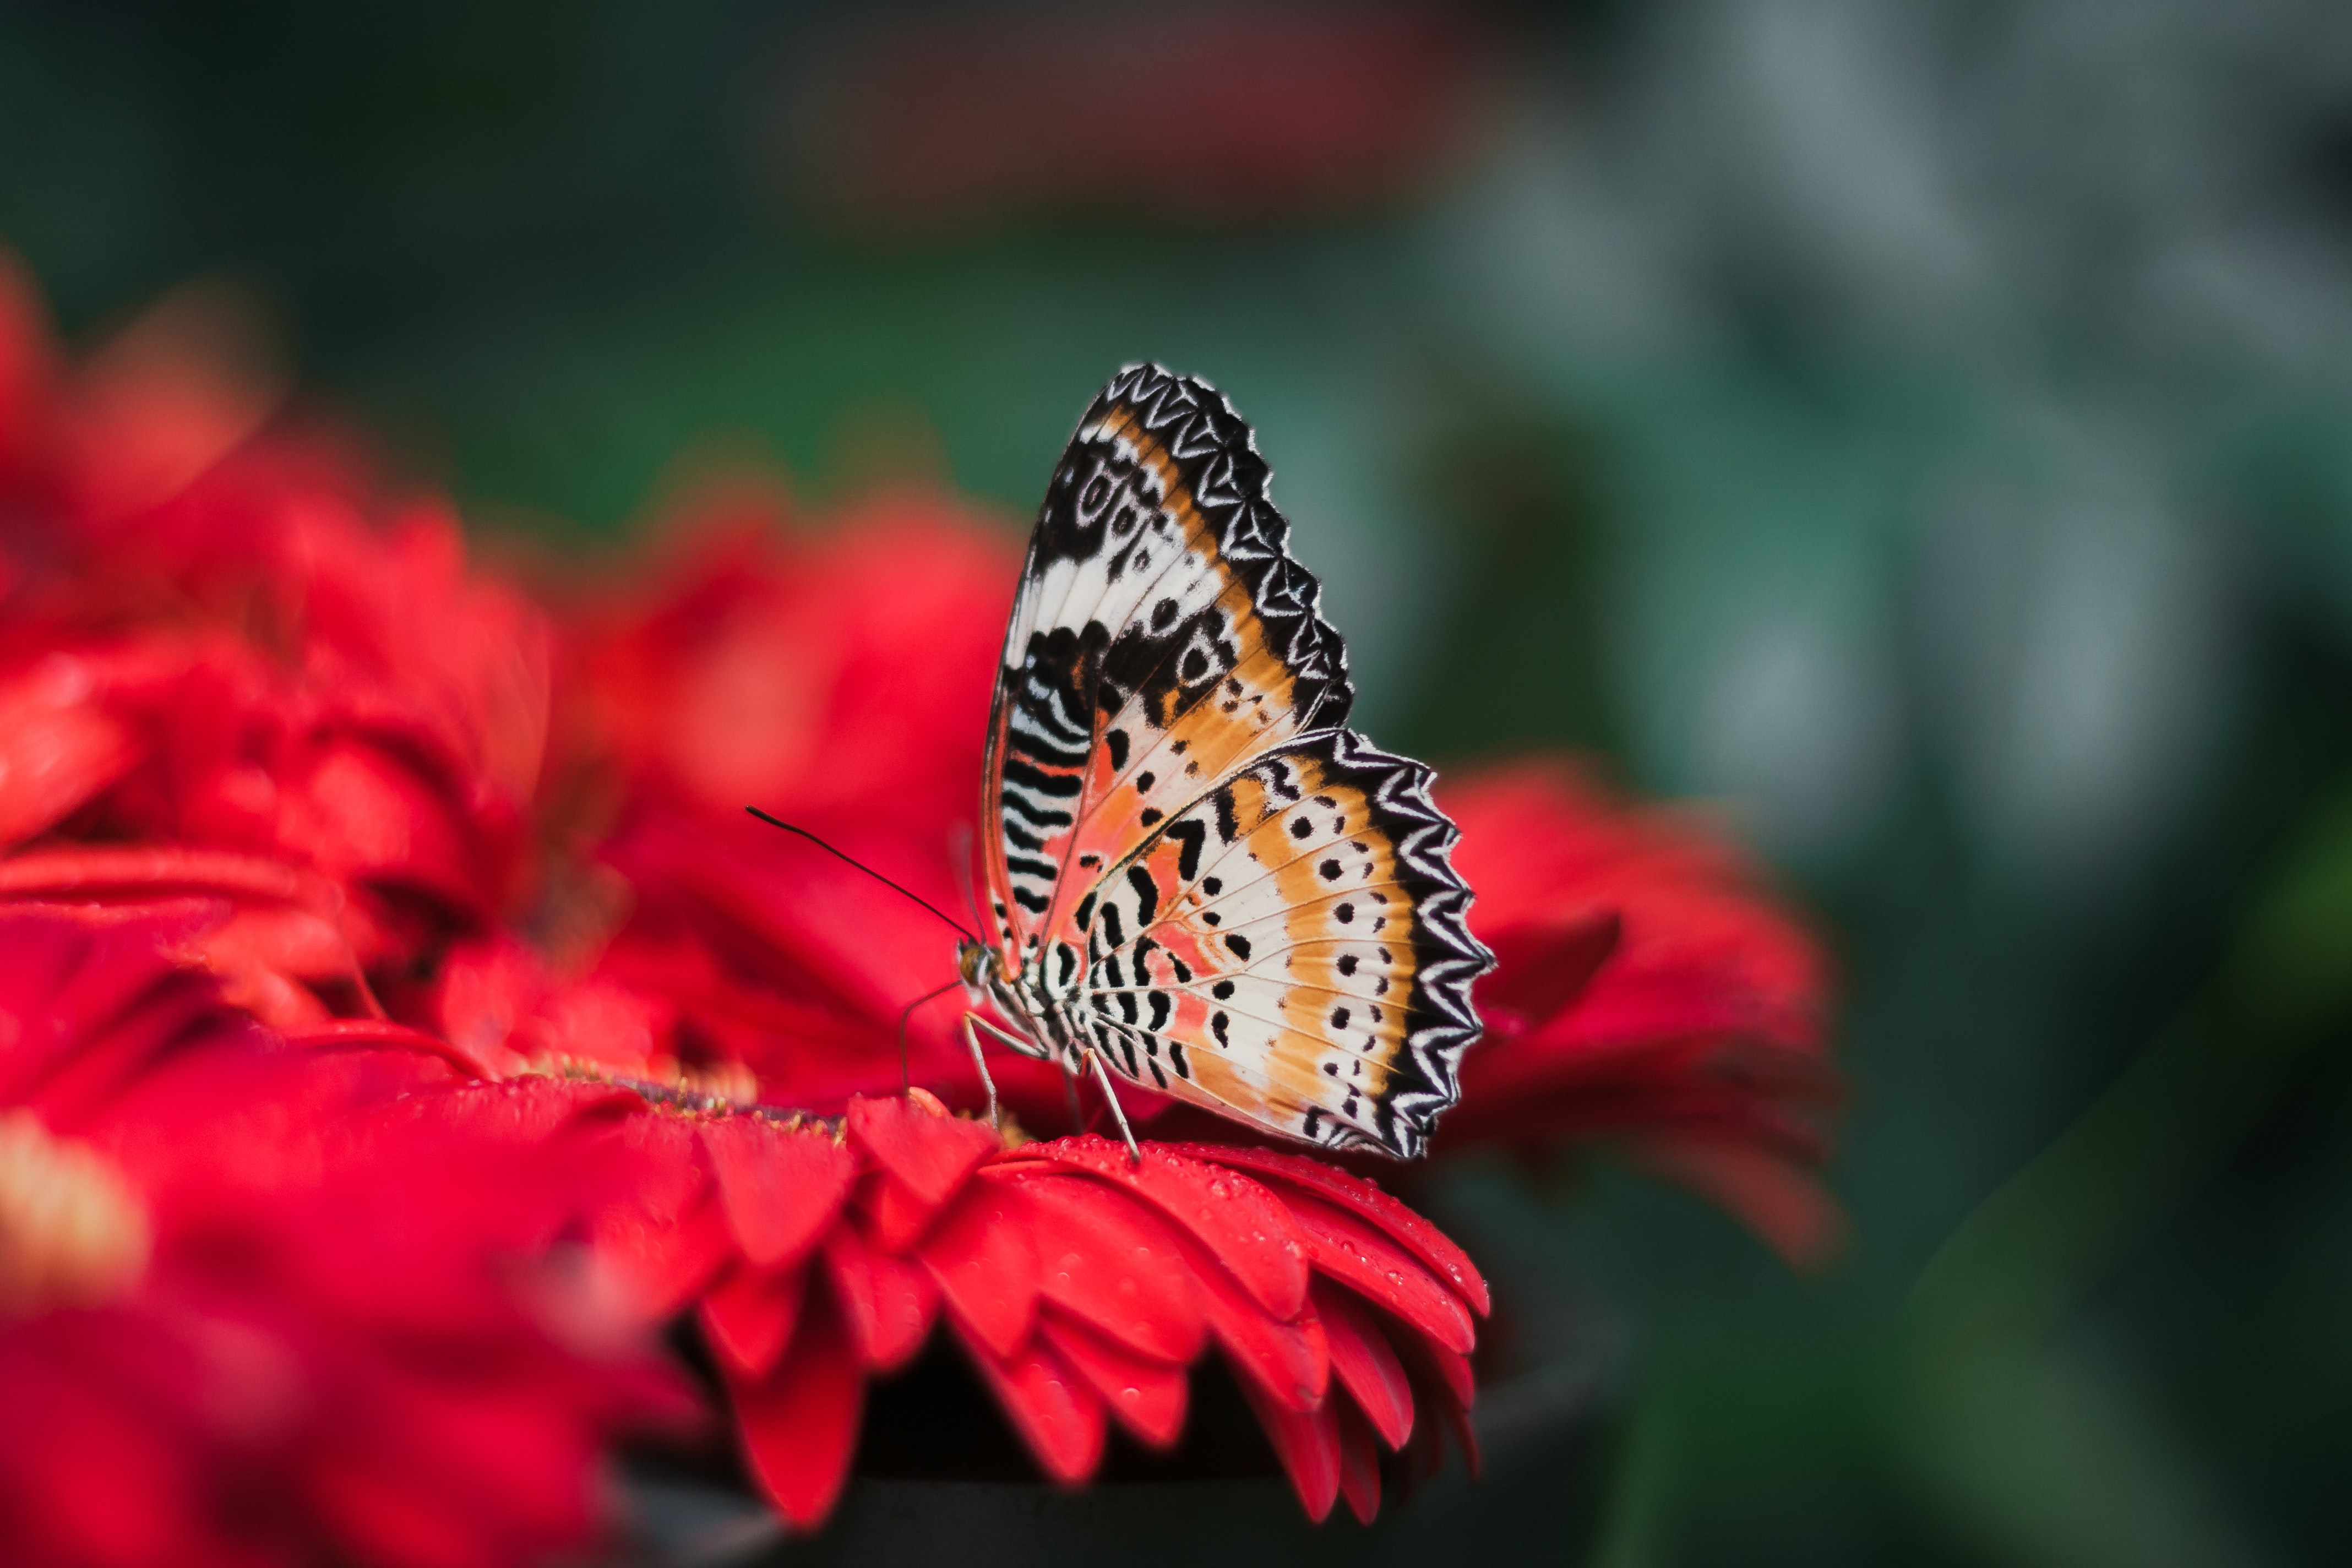 A macro shot of a colorful butterfly on a red flower